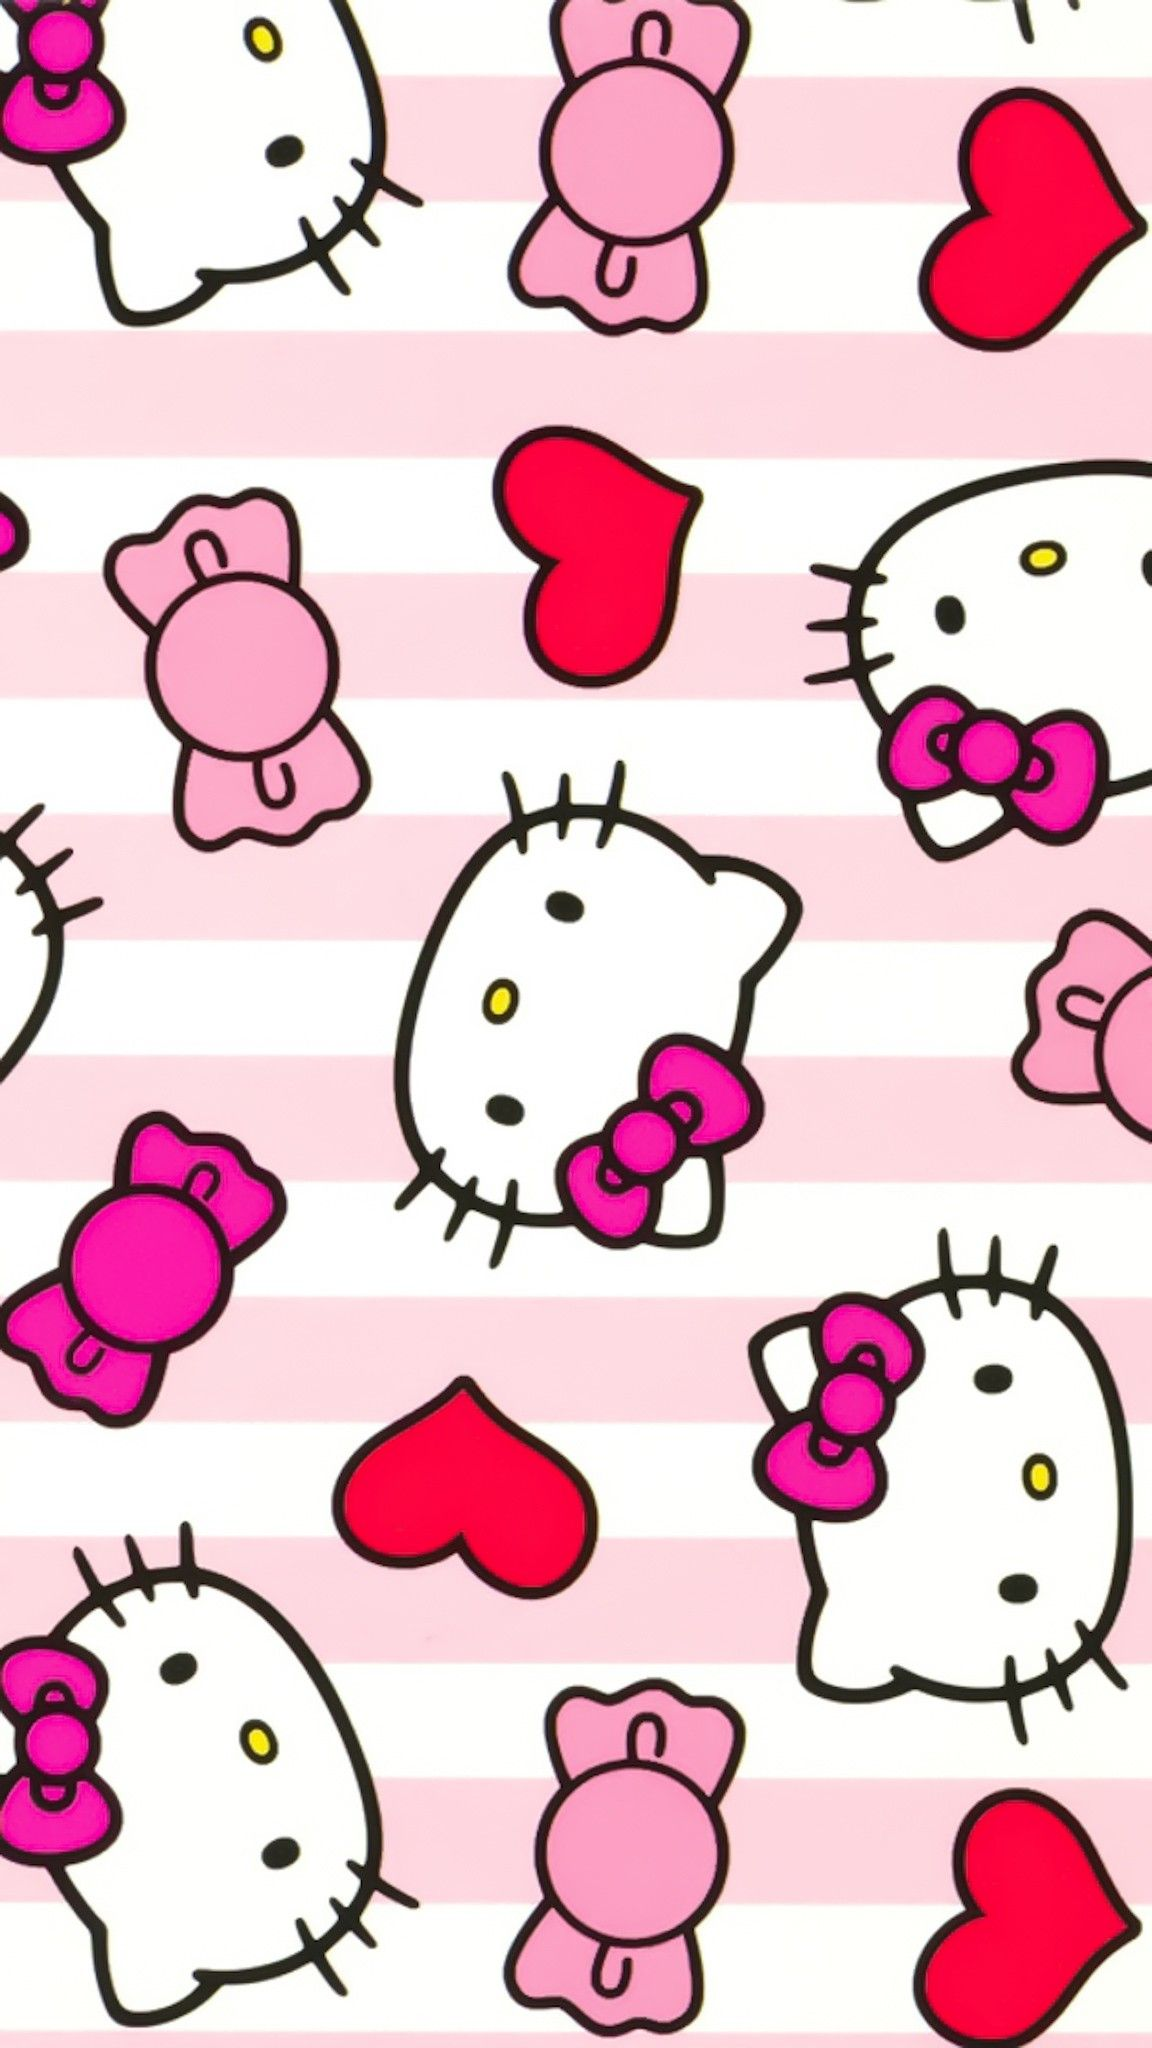 Pin By Aekkalisa On Hello Kitty Wpp In 2020 Hello Kitty Wallpaper Hd Hello Kitty Backgrounds Hello Kitty Wallpaper